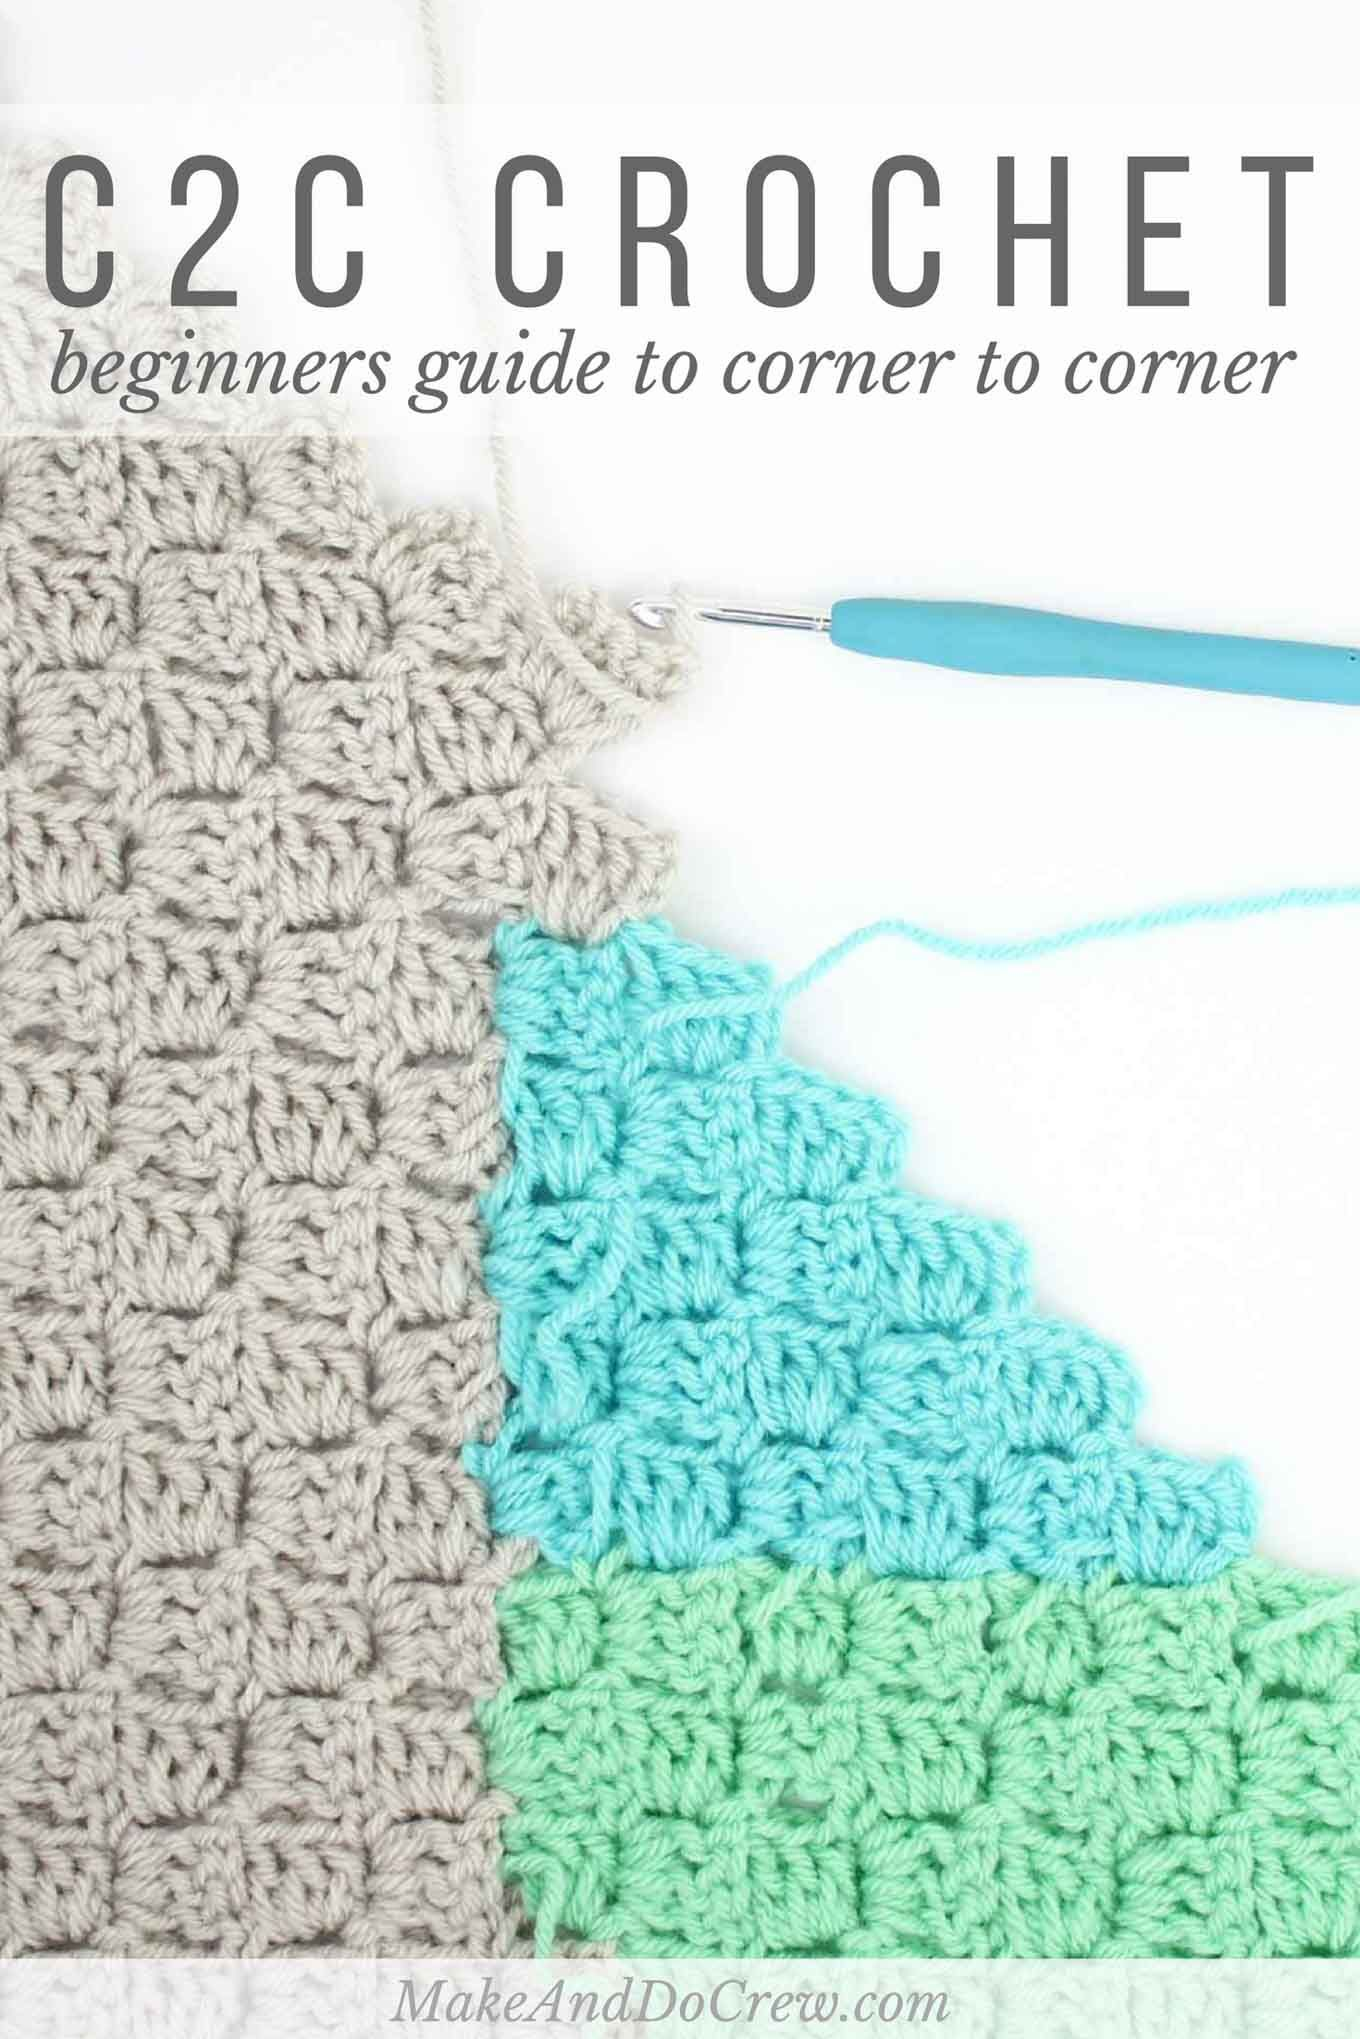 How to corner to corner crochet c2c for beginners chart how to corner to corner crochet c2c for beginners bankloansurffo Image collections